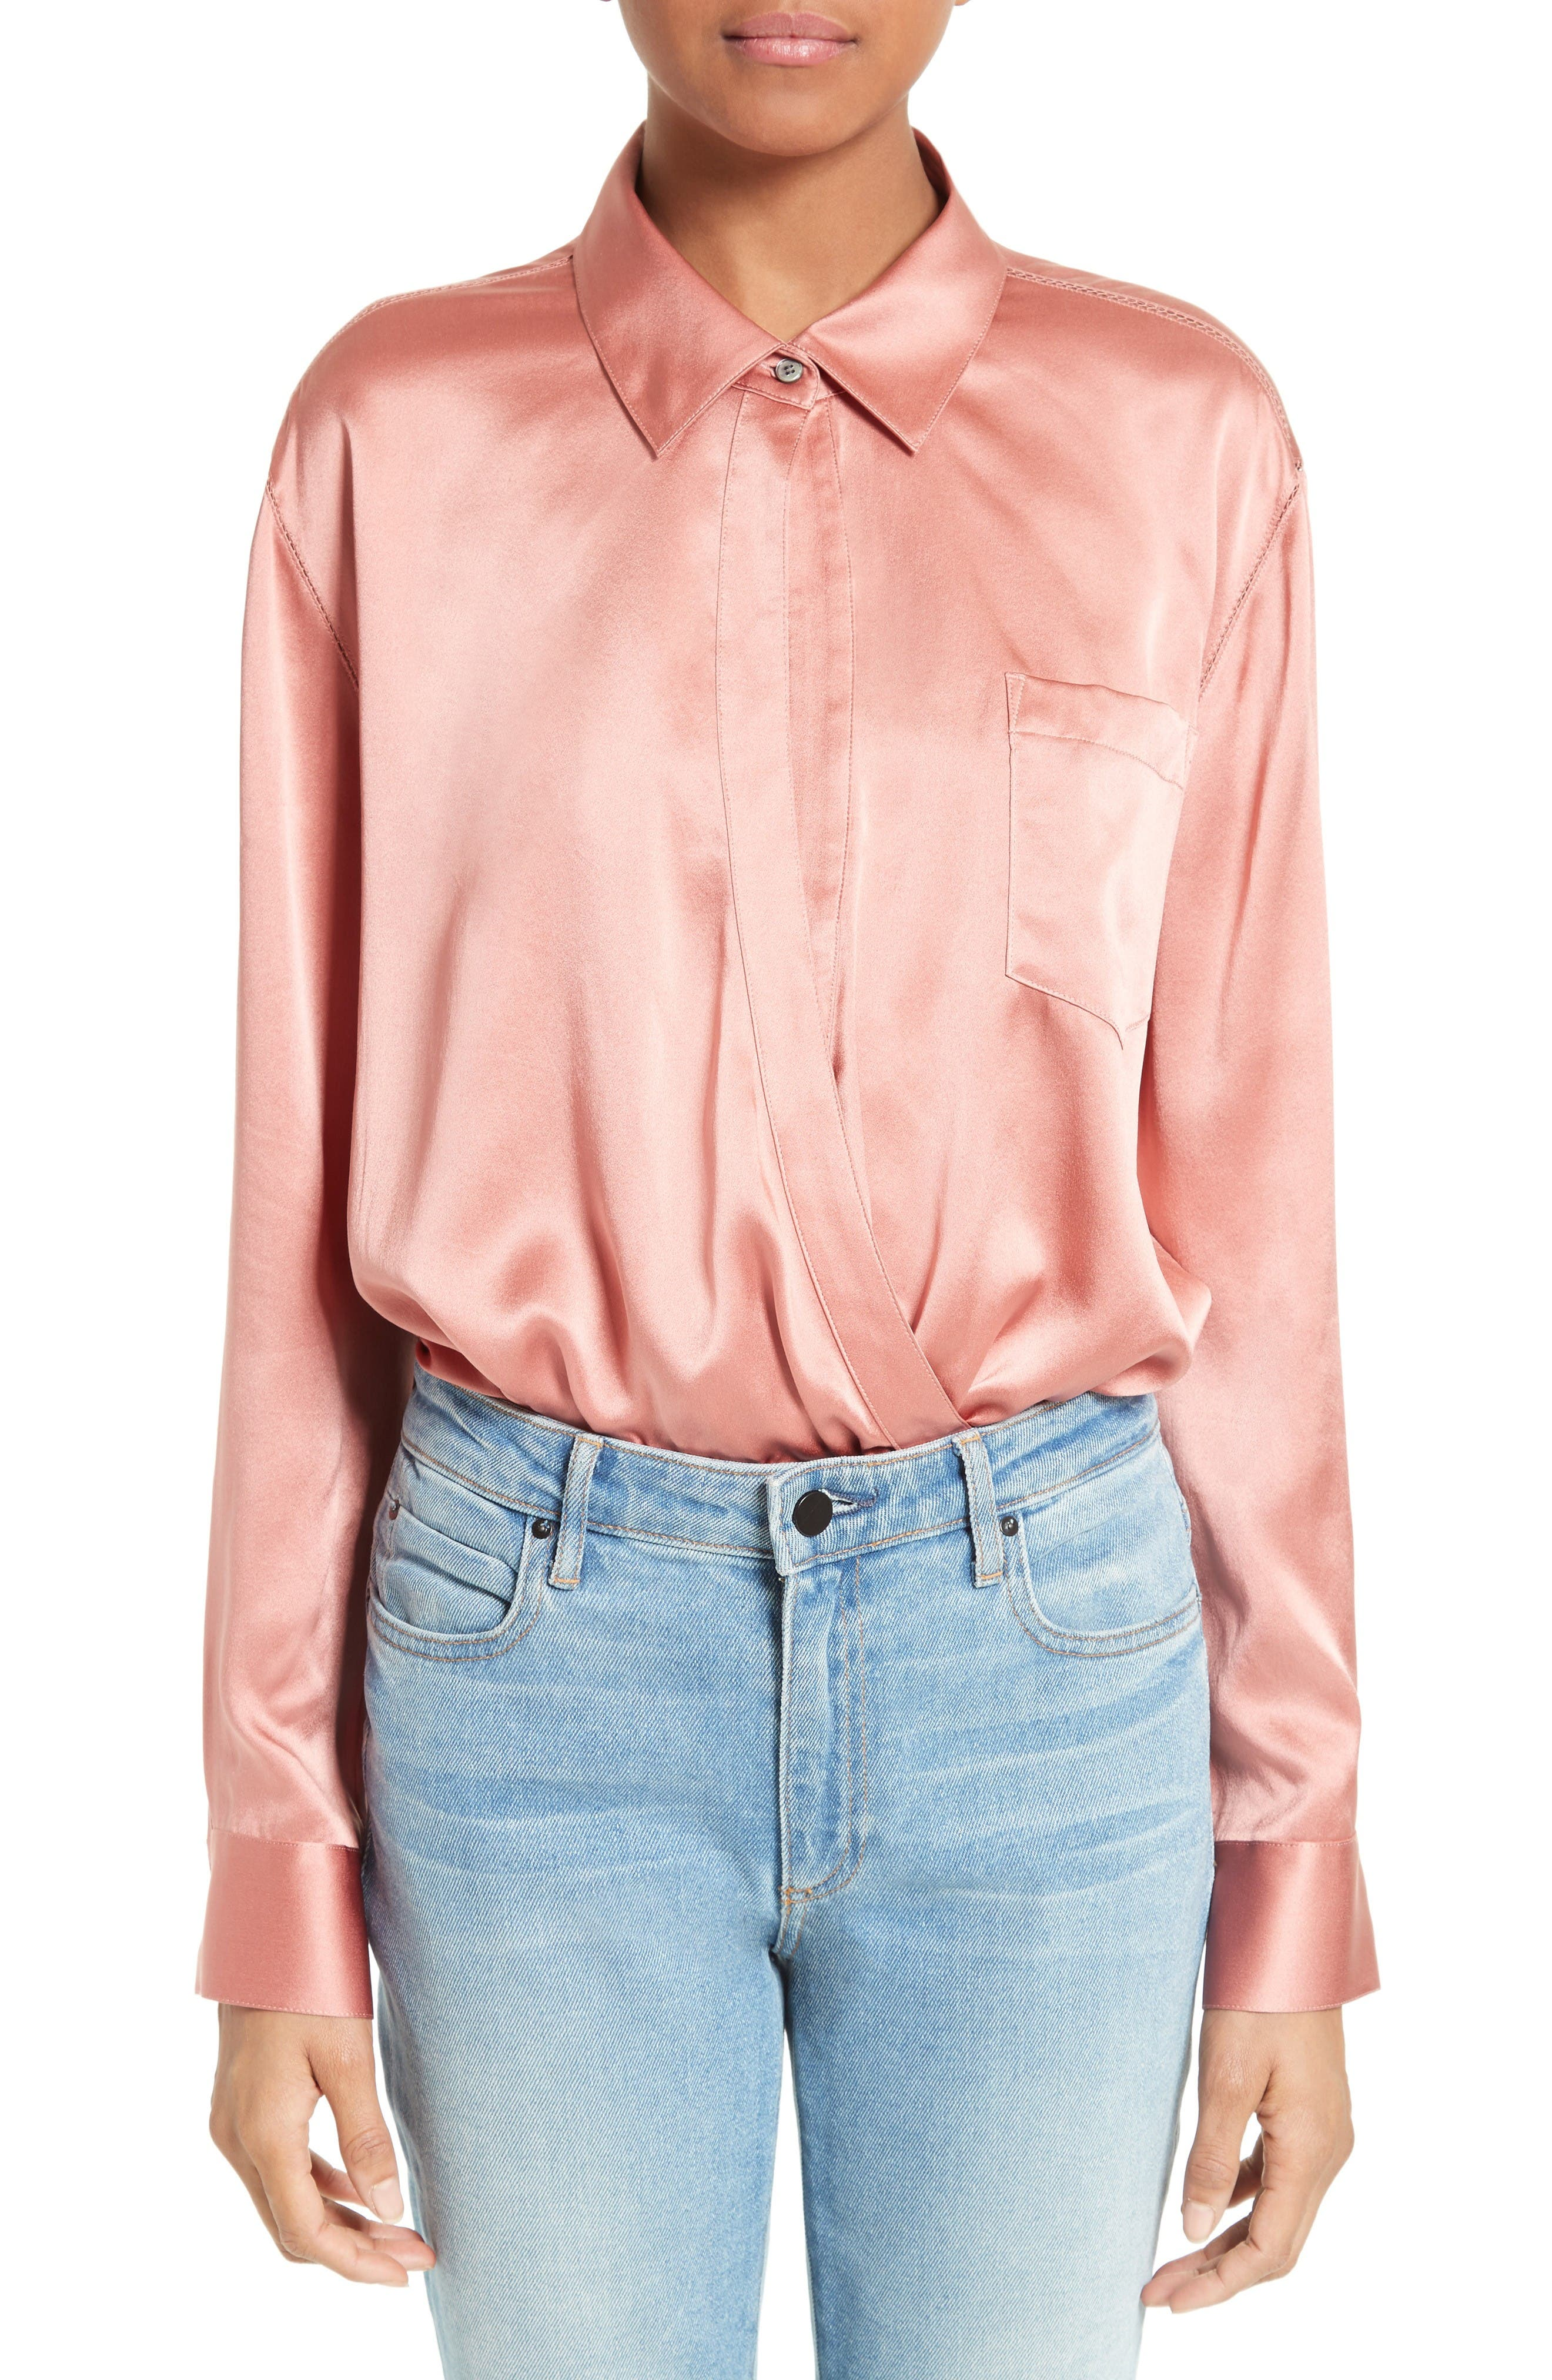 Alternate Image 1 Selected - T by Alexander Wang Silk Wrap Shirt Bodysuit